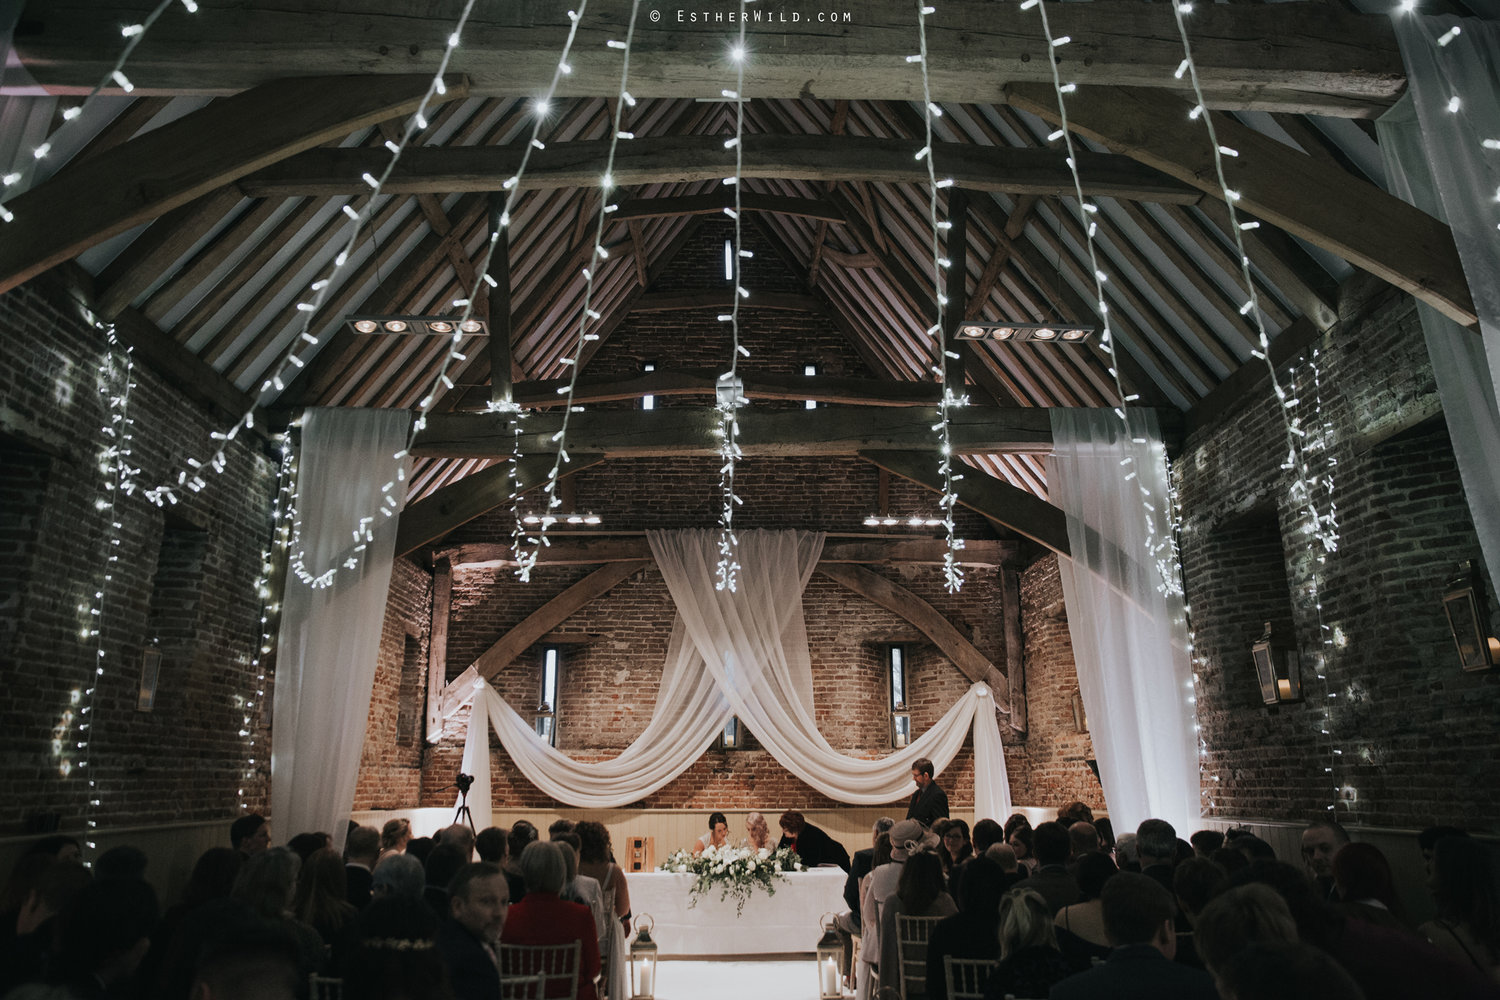 More Weddings services with barn wedding decor